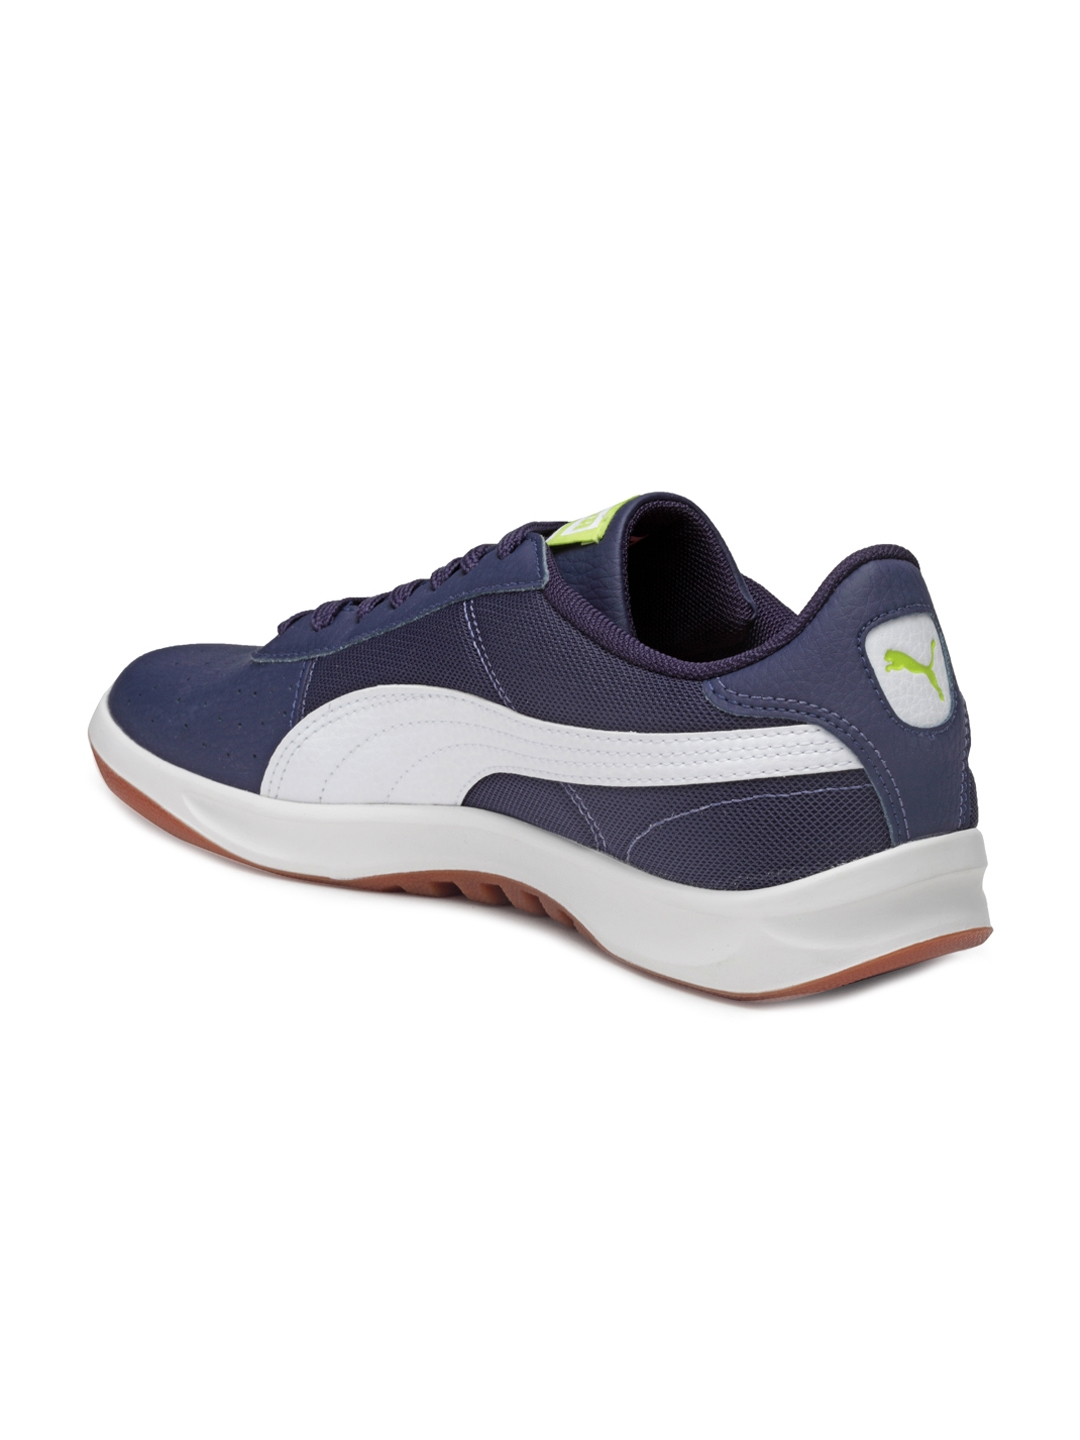 4f2fa394346 Buy Puma Men Navy Blue G. Vilas 2 Core IDP Peacoat Puma White ...